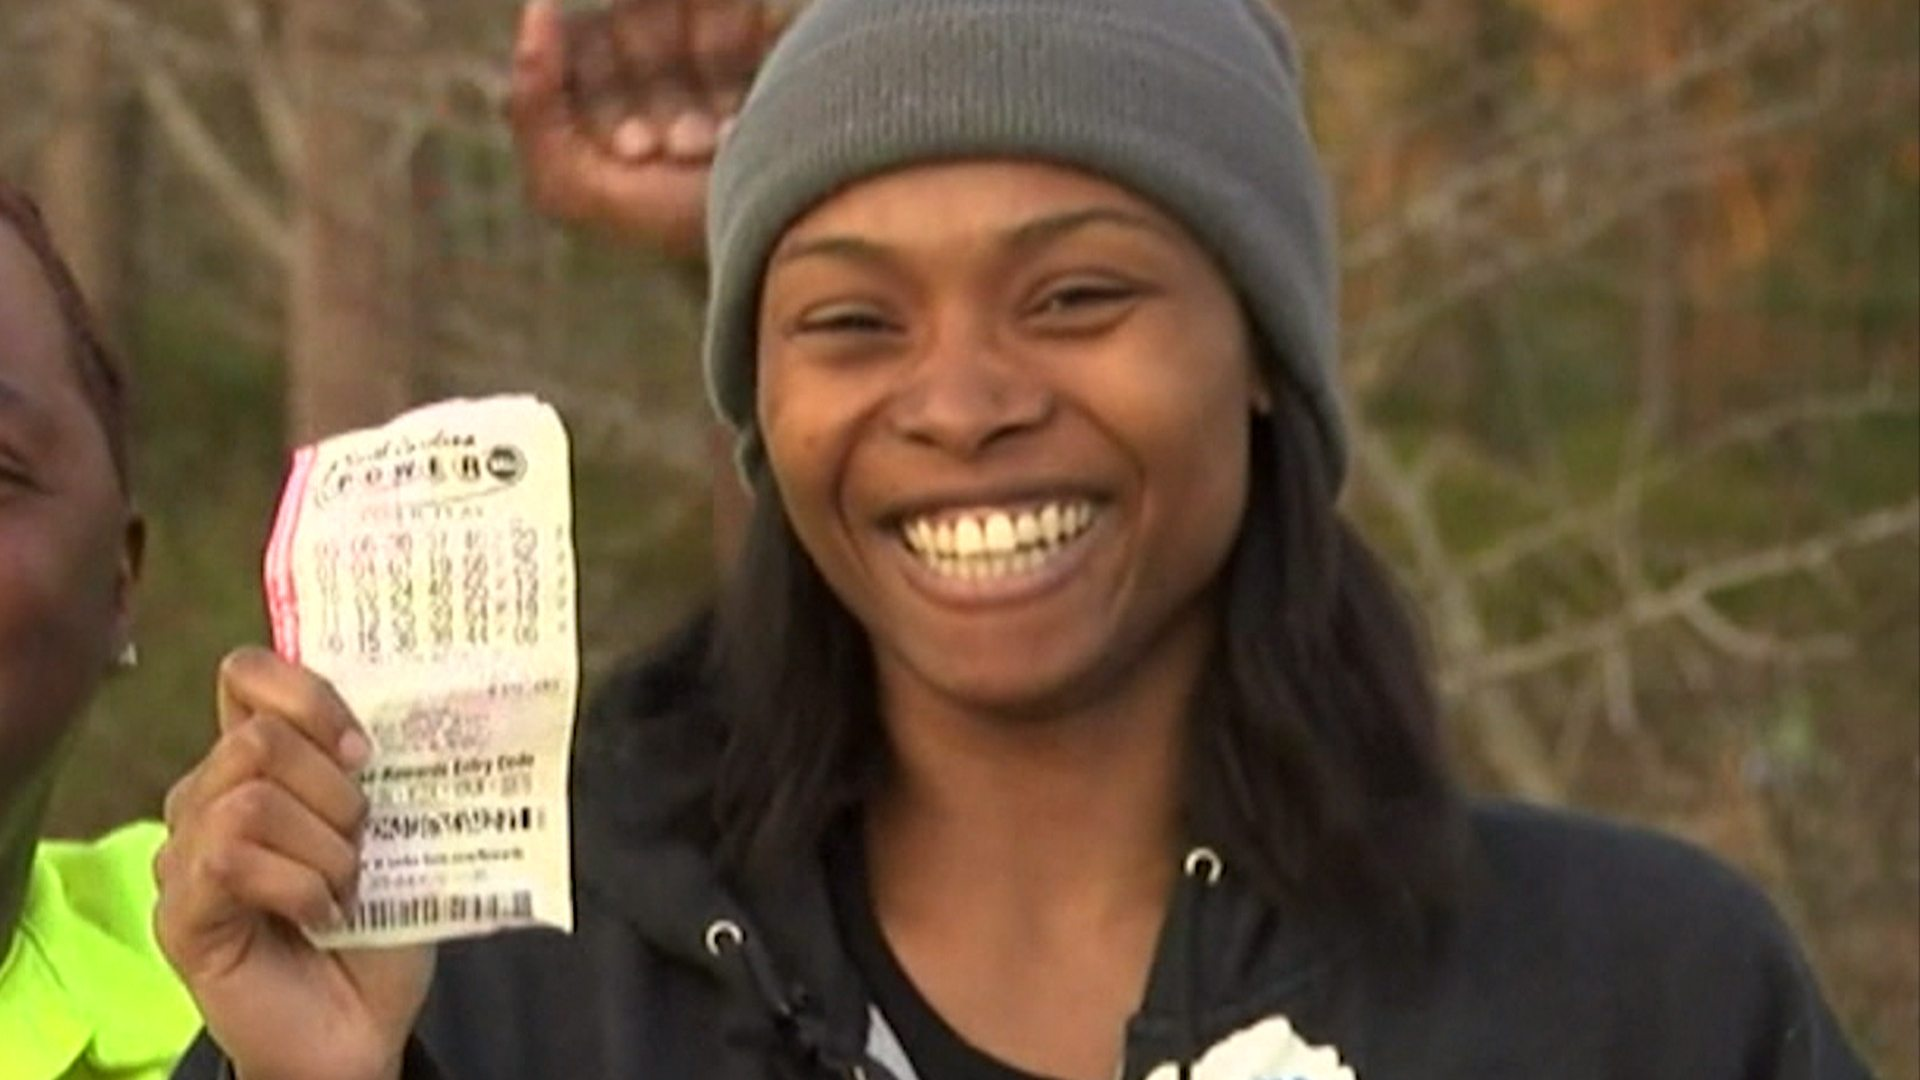 N.C. Powerball Lottery Winner's Boyfriend Jailed a 3rd Time, Will She Pay the $10K Bond?